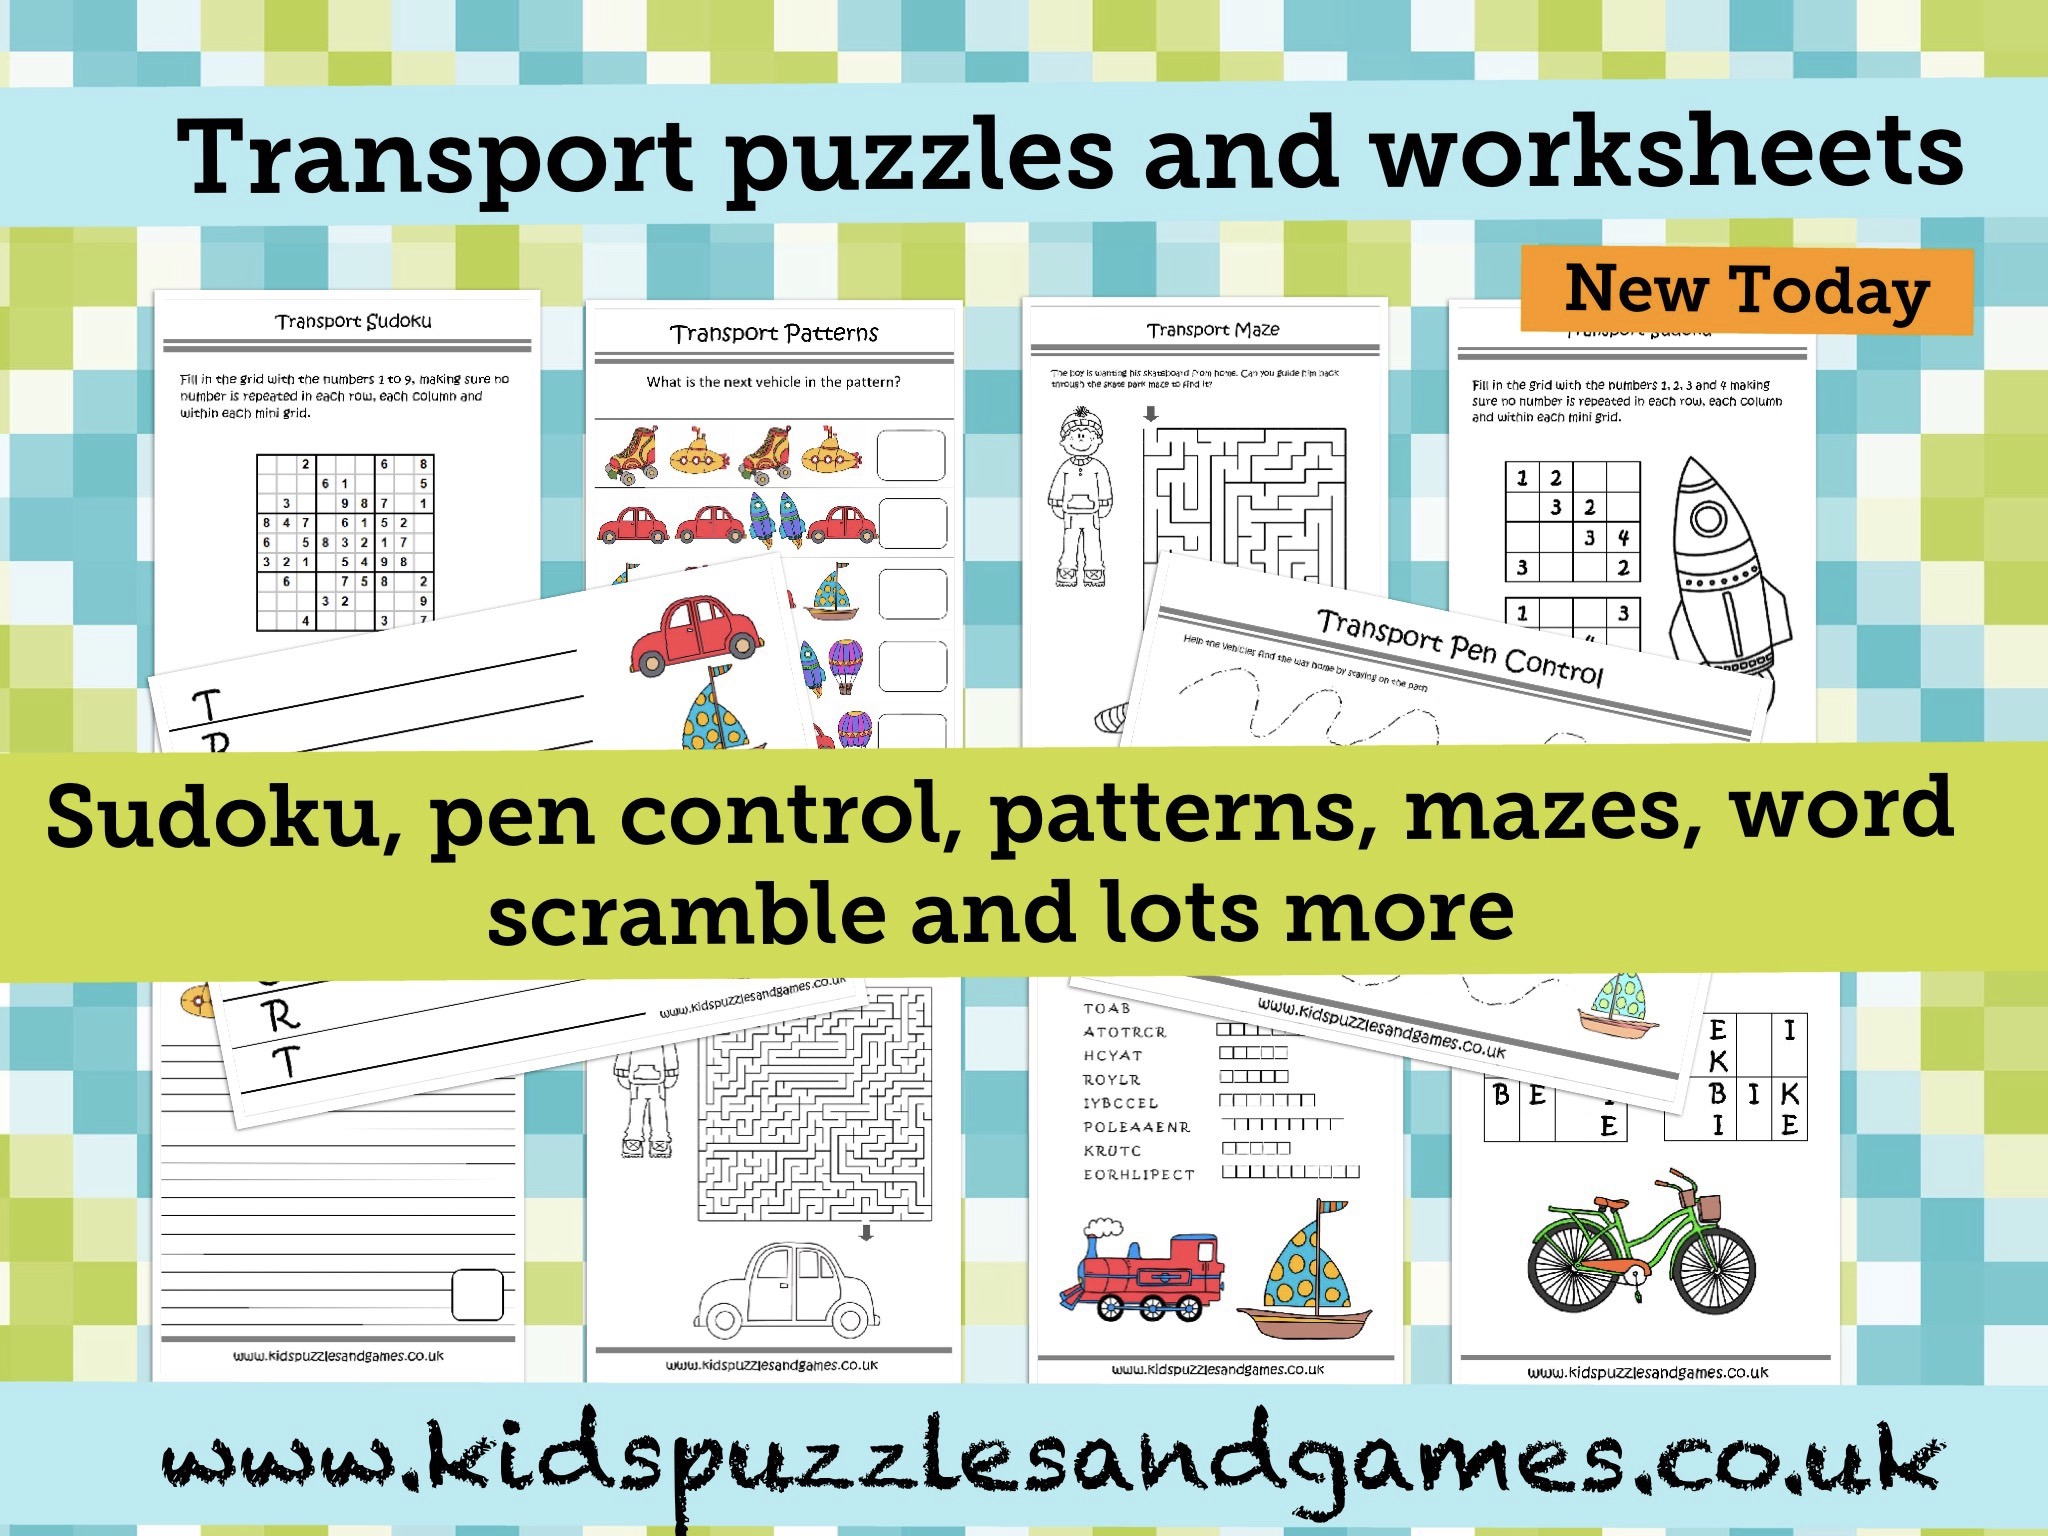 Welcome To Kids Puzzles And Games - Printable Puzzles For 9 Year Olds